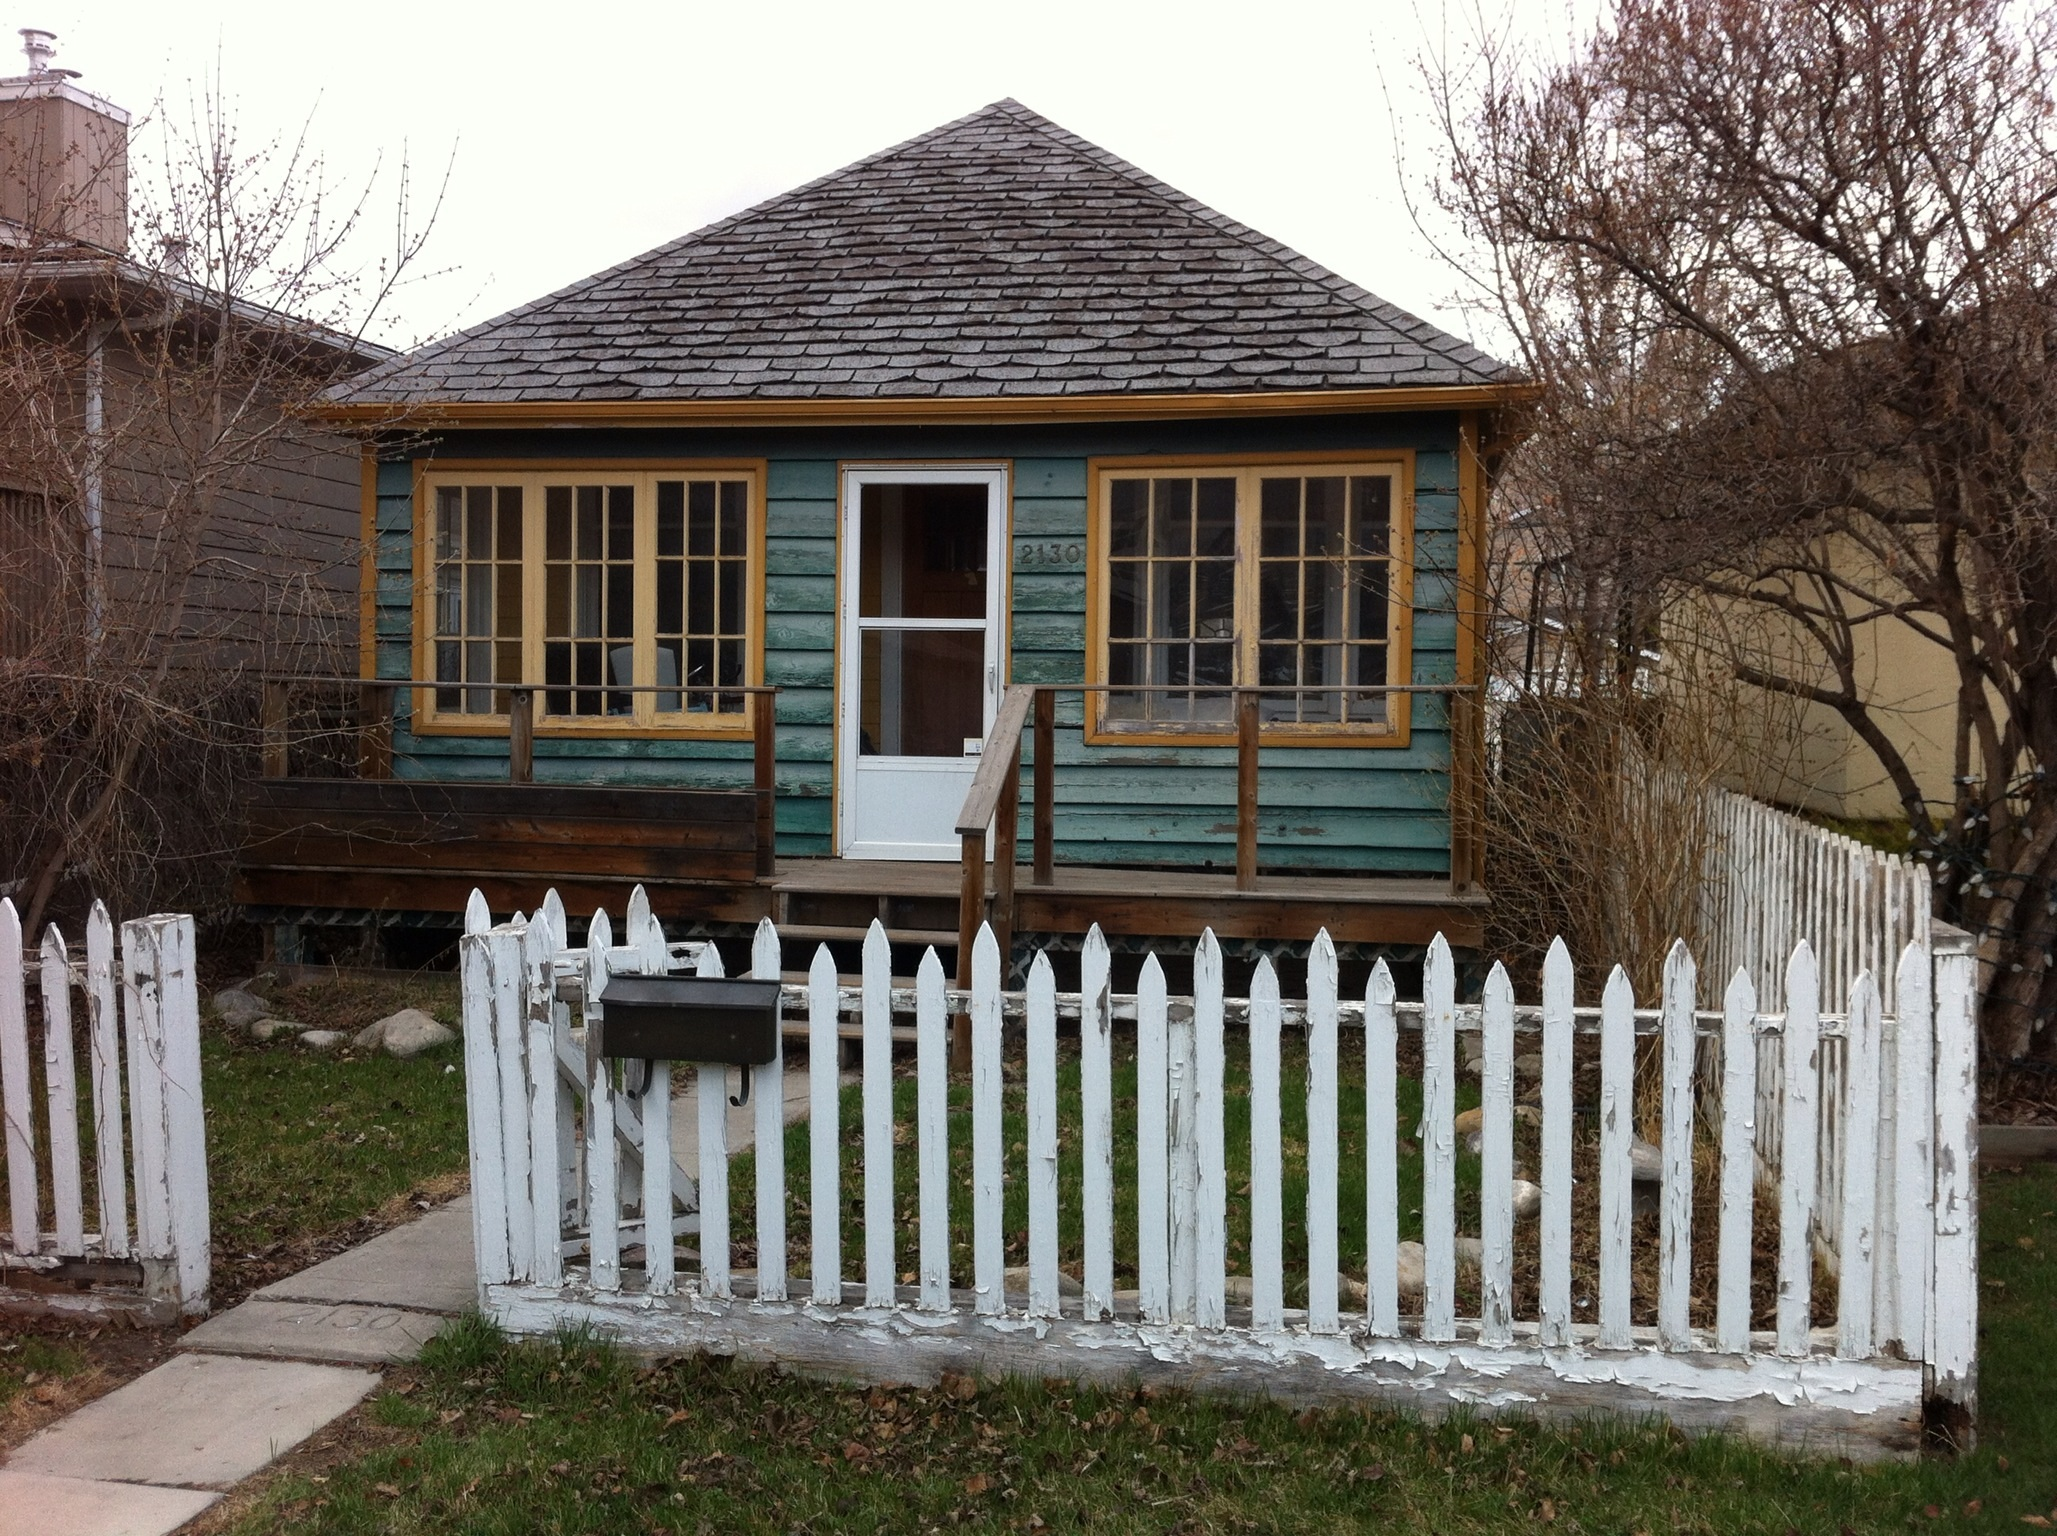 A typical urban cottage on the pariries. White picket fence, porch and large windows make it very welcoming.